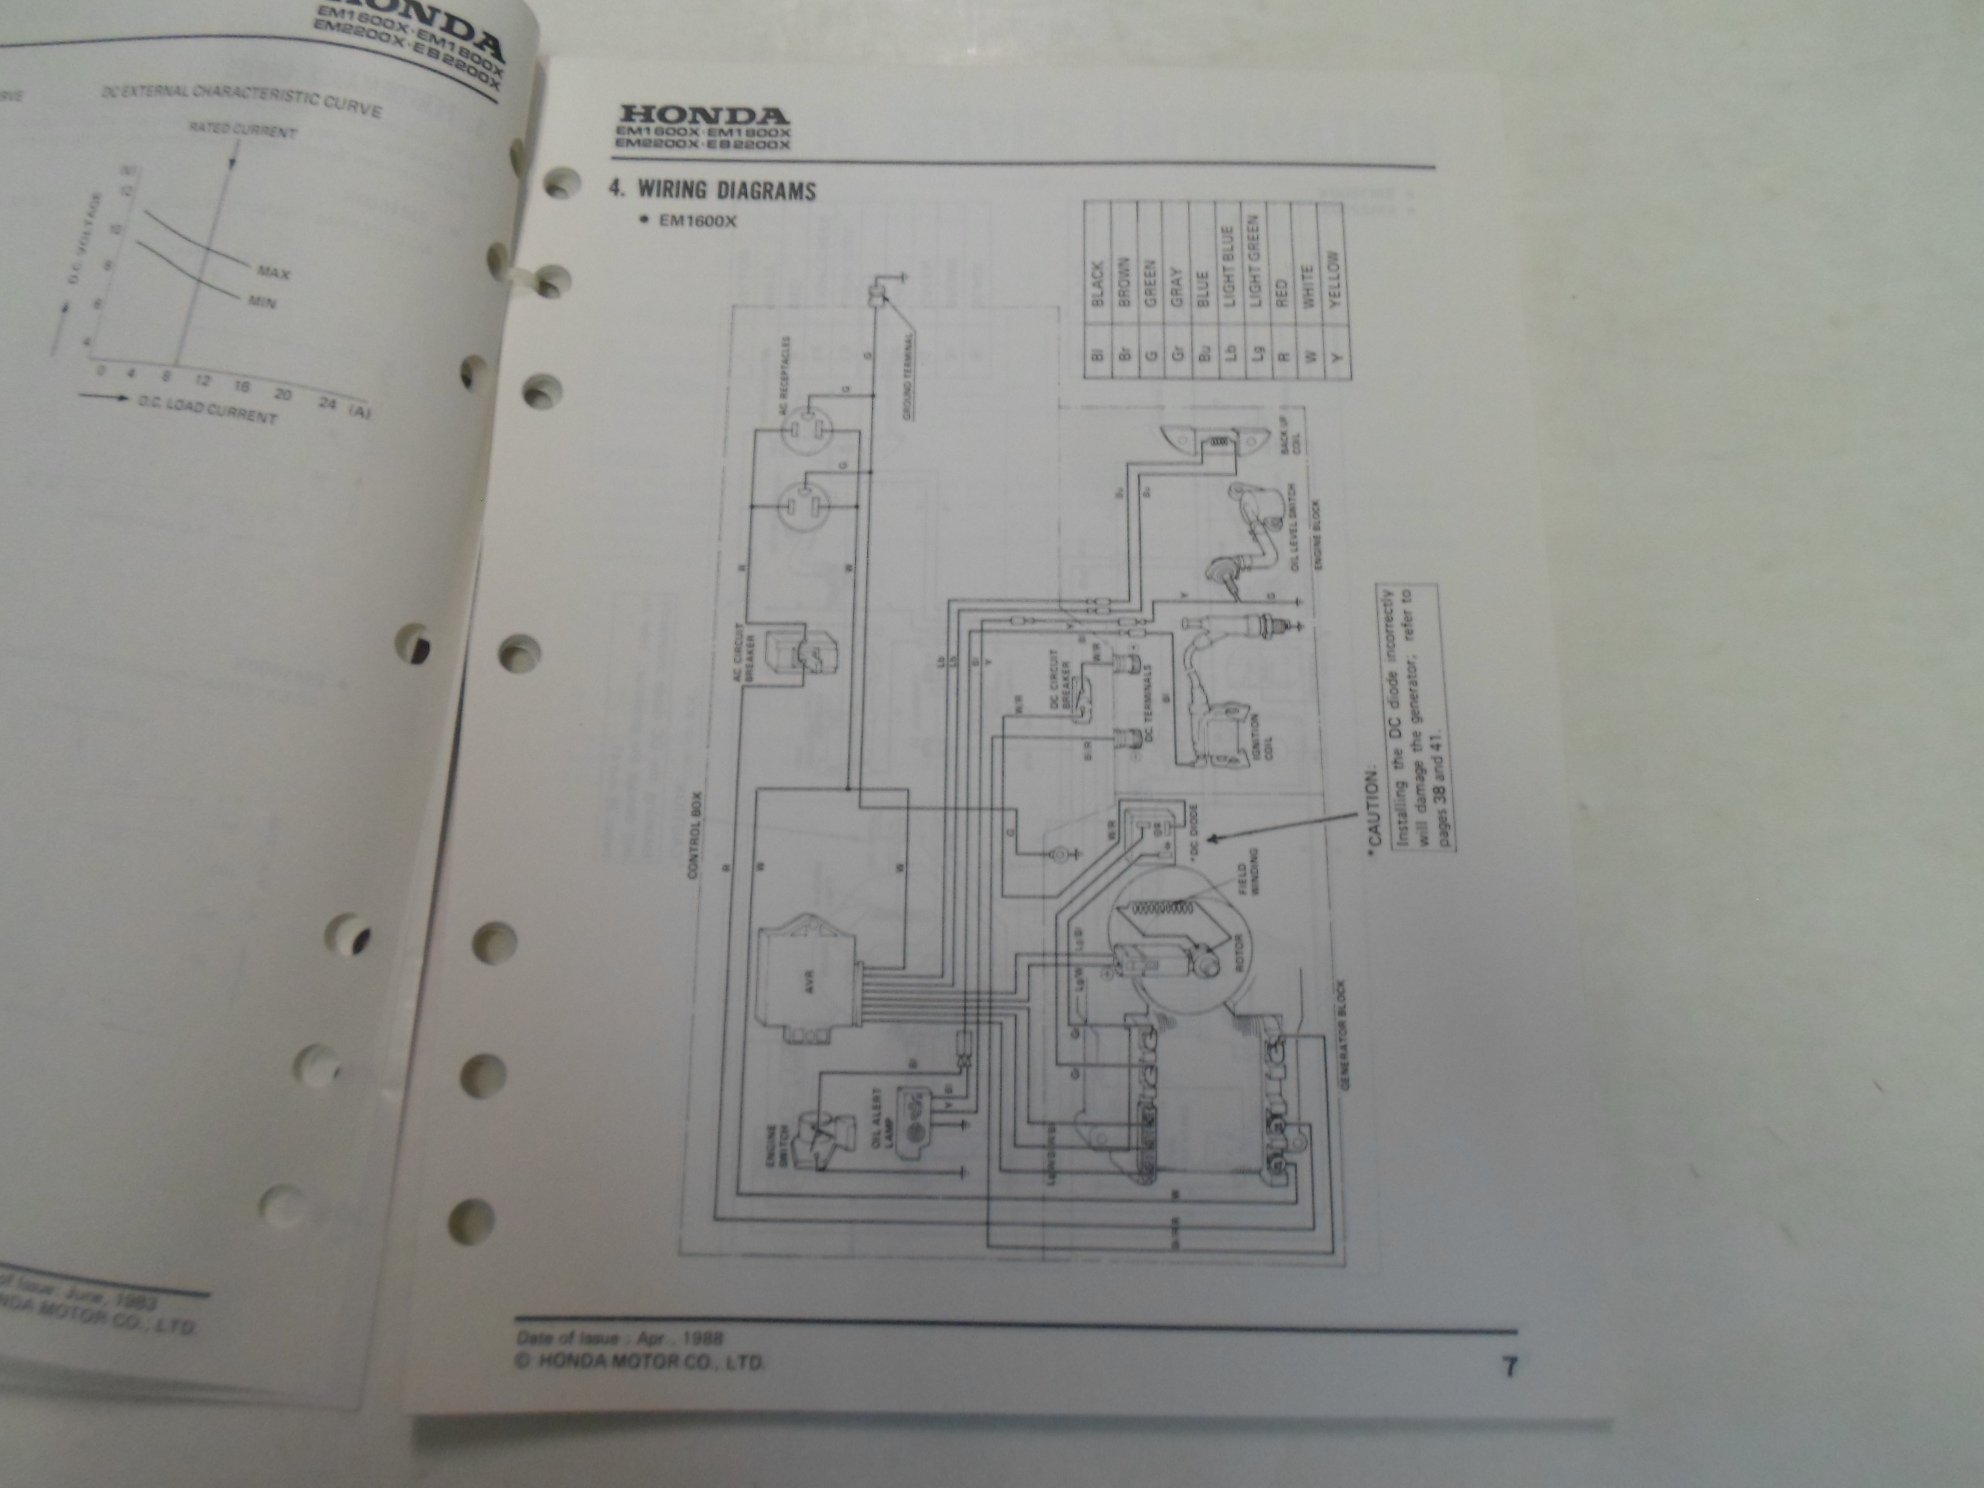 1983 Honda Em1600x Em1800x Em2200x Eb2200x Generator Shop Manual Motor Diagram Loose Leaf Co Books